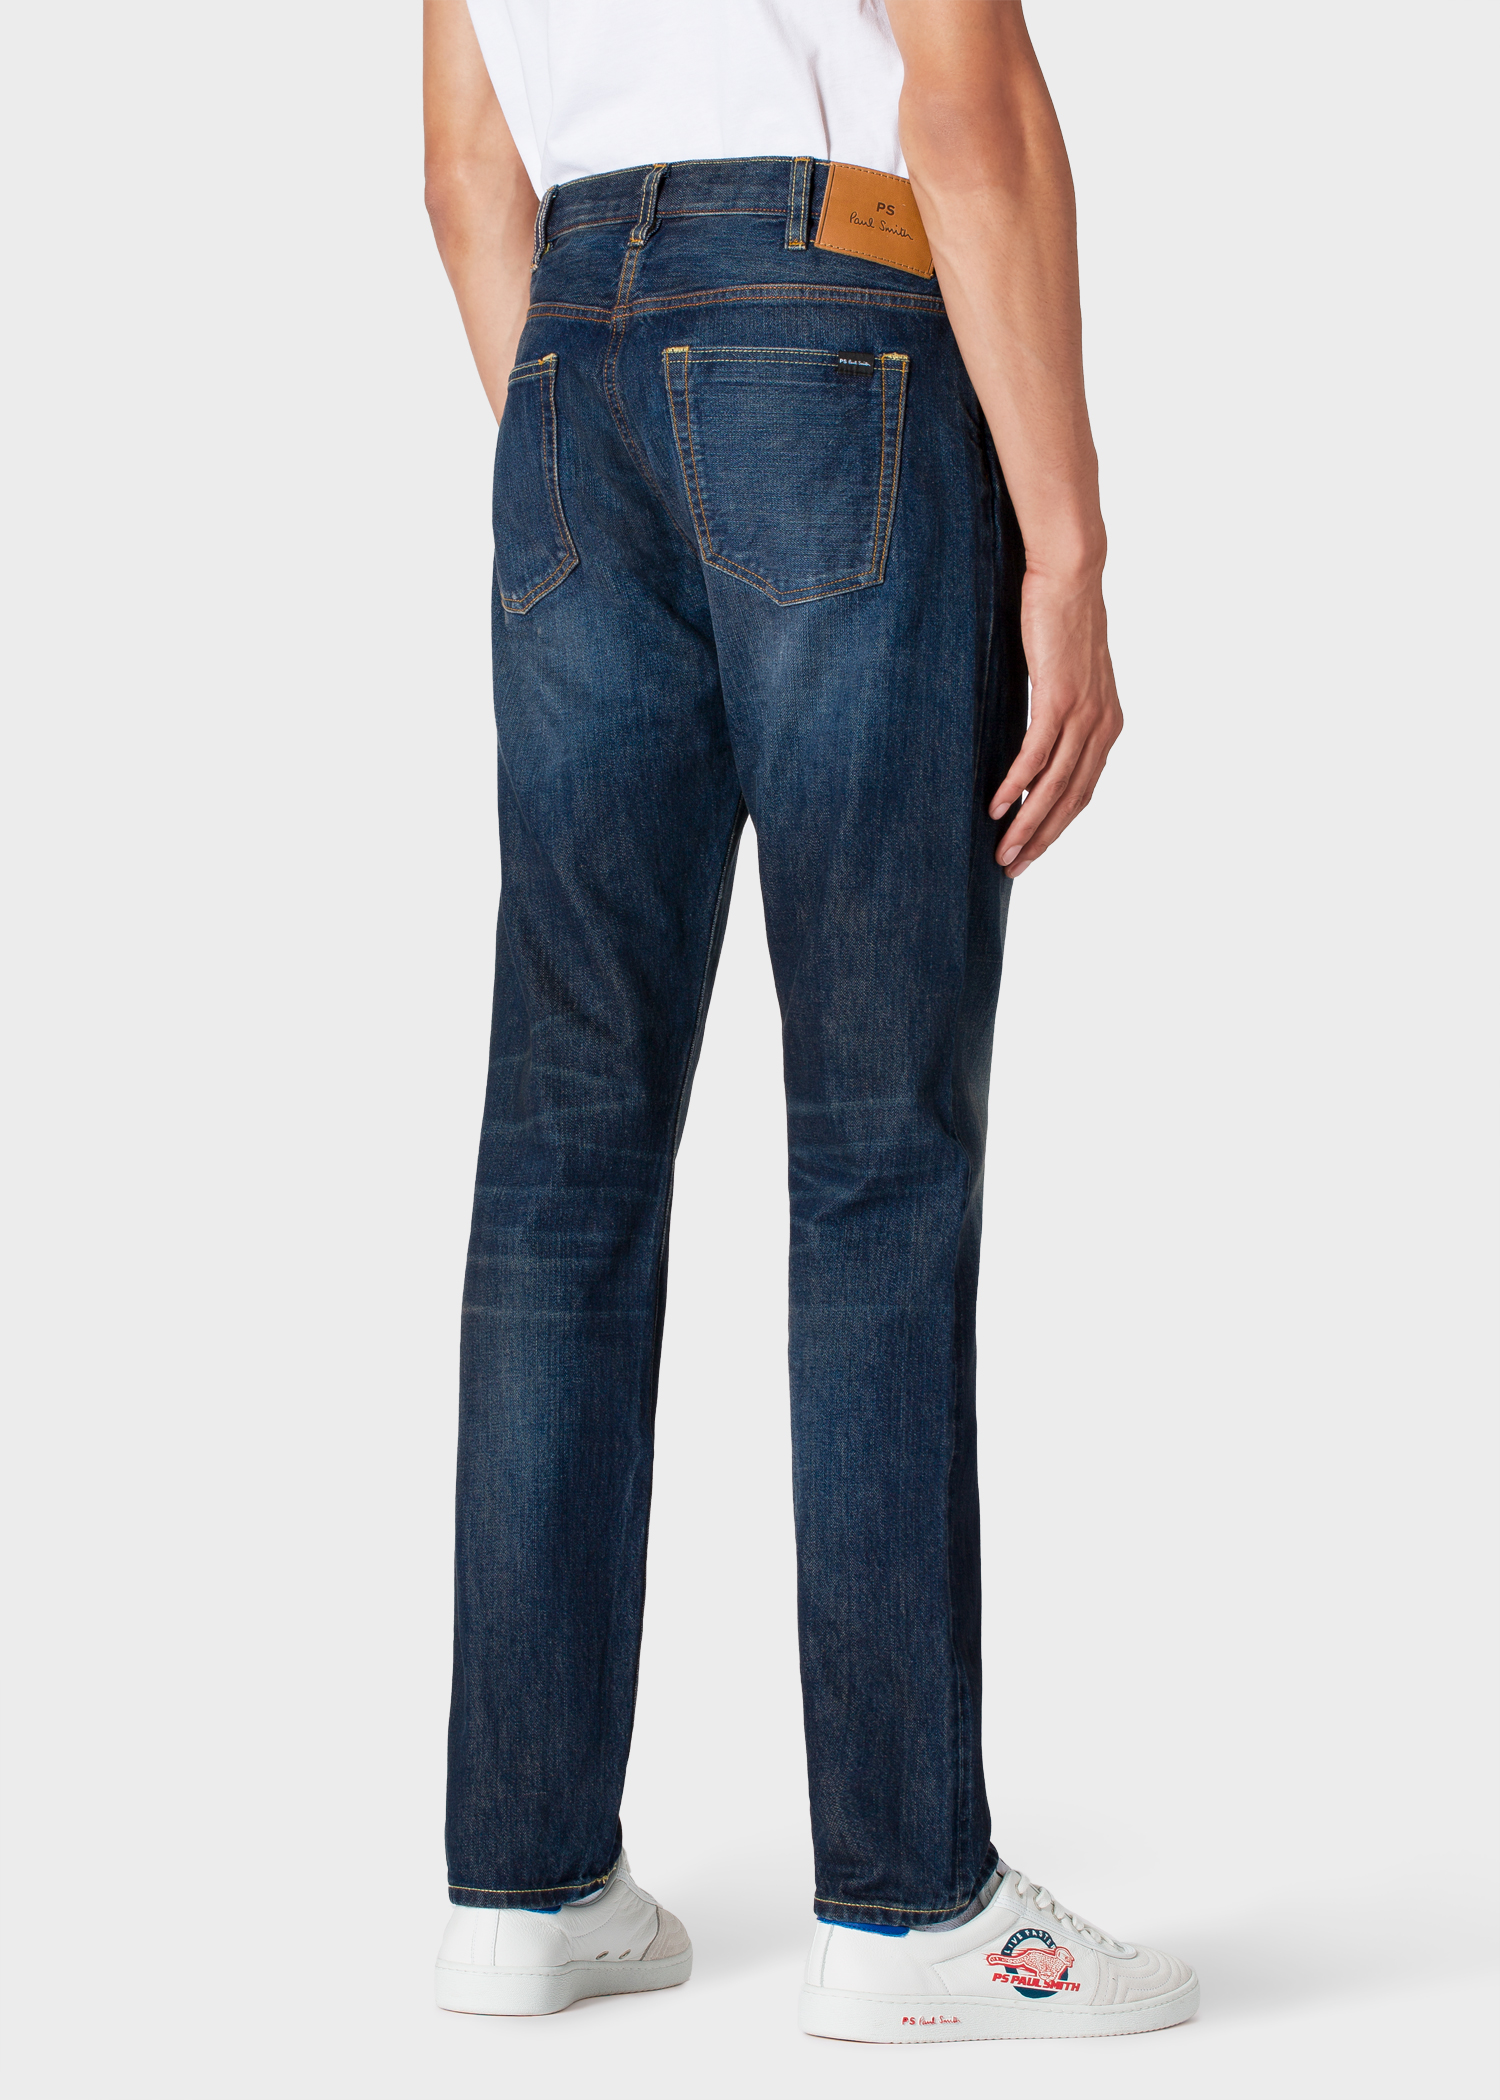 Turbo Men's Tapered-Fit Dark-Wash 'Cone™ Red Selvedge' Jeans - Paul Smith US DC58